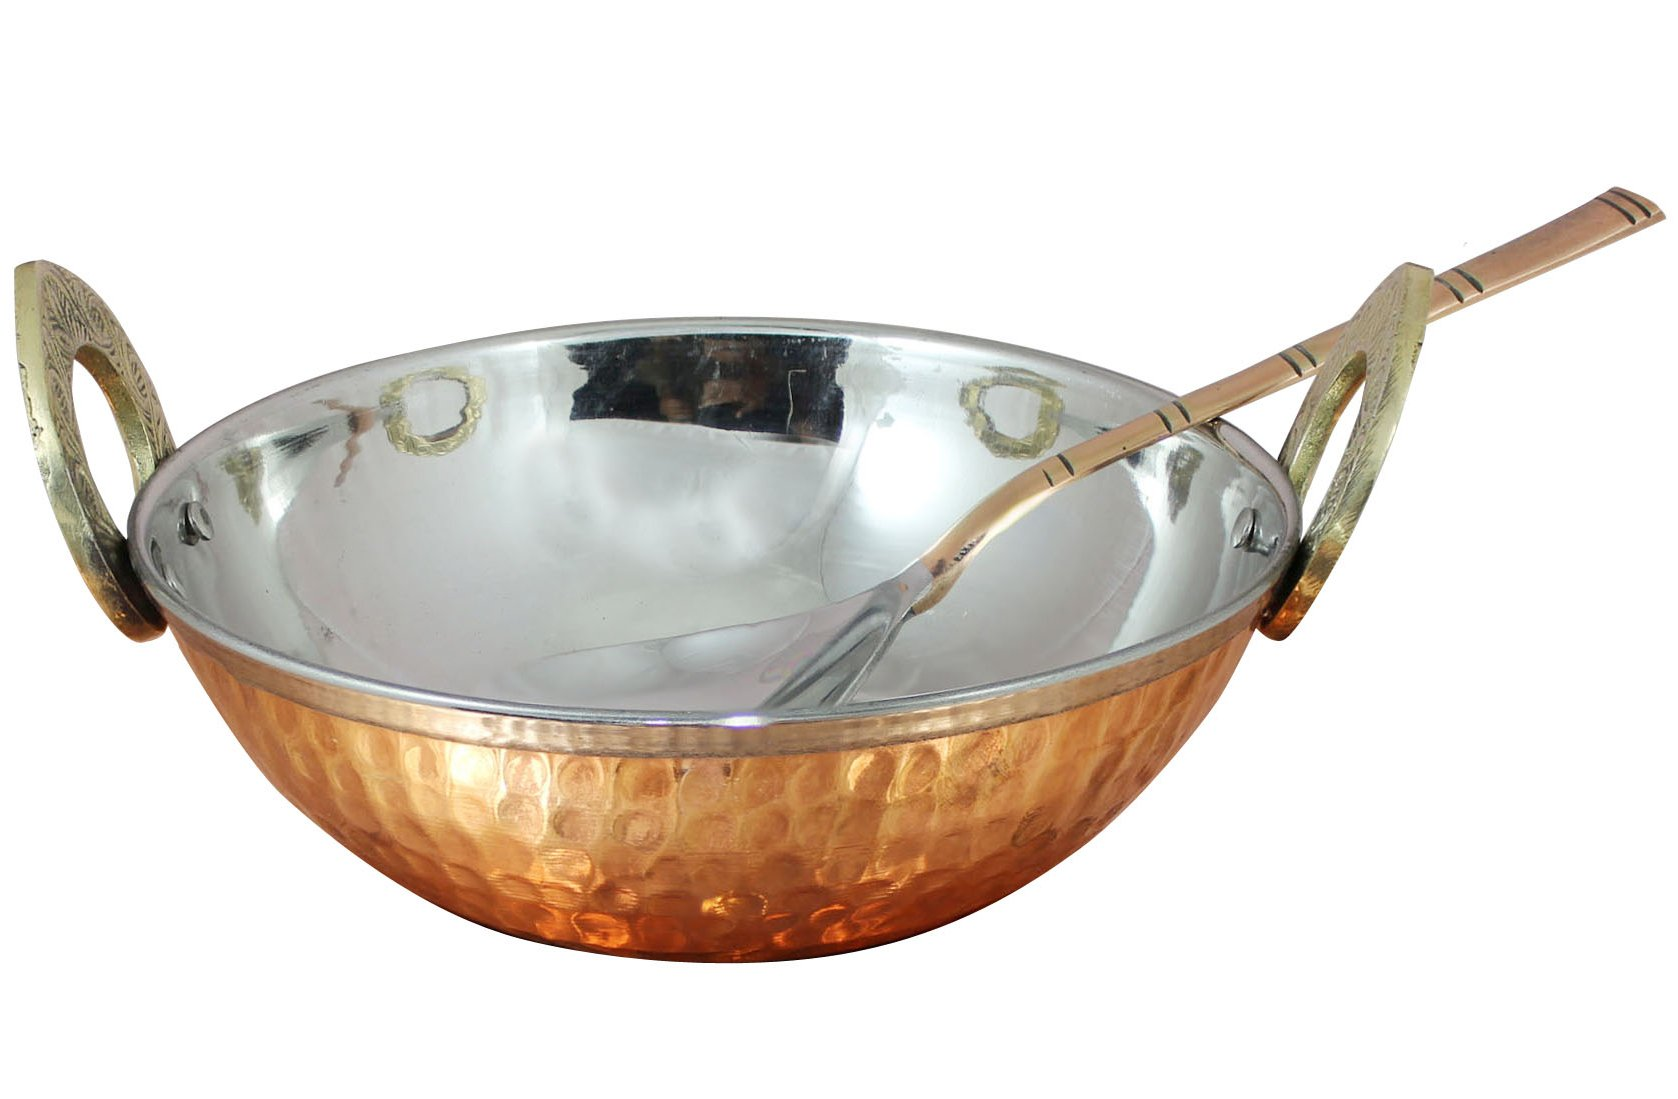 Copper Stainless Steel 34 OZ Serving Bowl with Spoon for Ice Cream, Noodles, Salad, Cereal, Rice, Pasta, Fruit, Dessert Handmade Hammered Style Heat Insulated Double Walled Multipurpose Bowl, 7.1 Inch